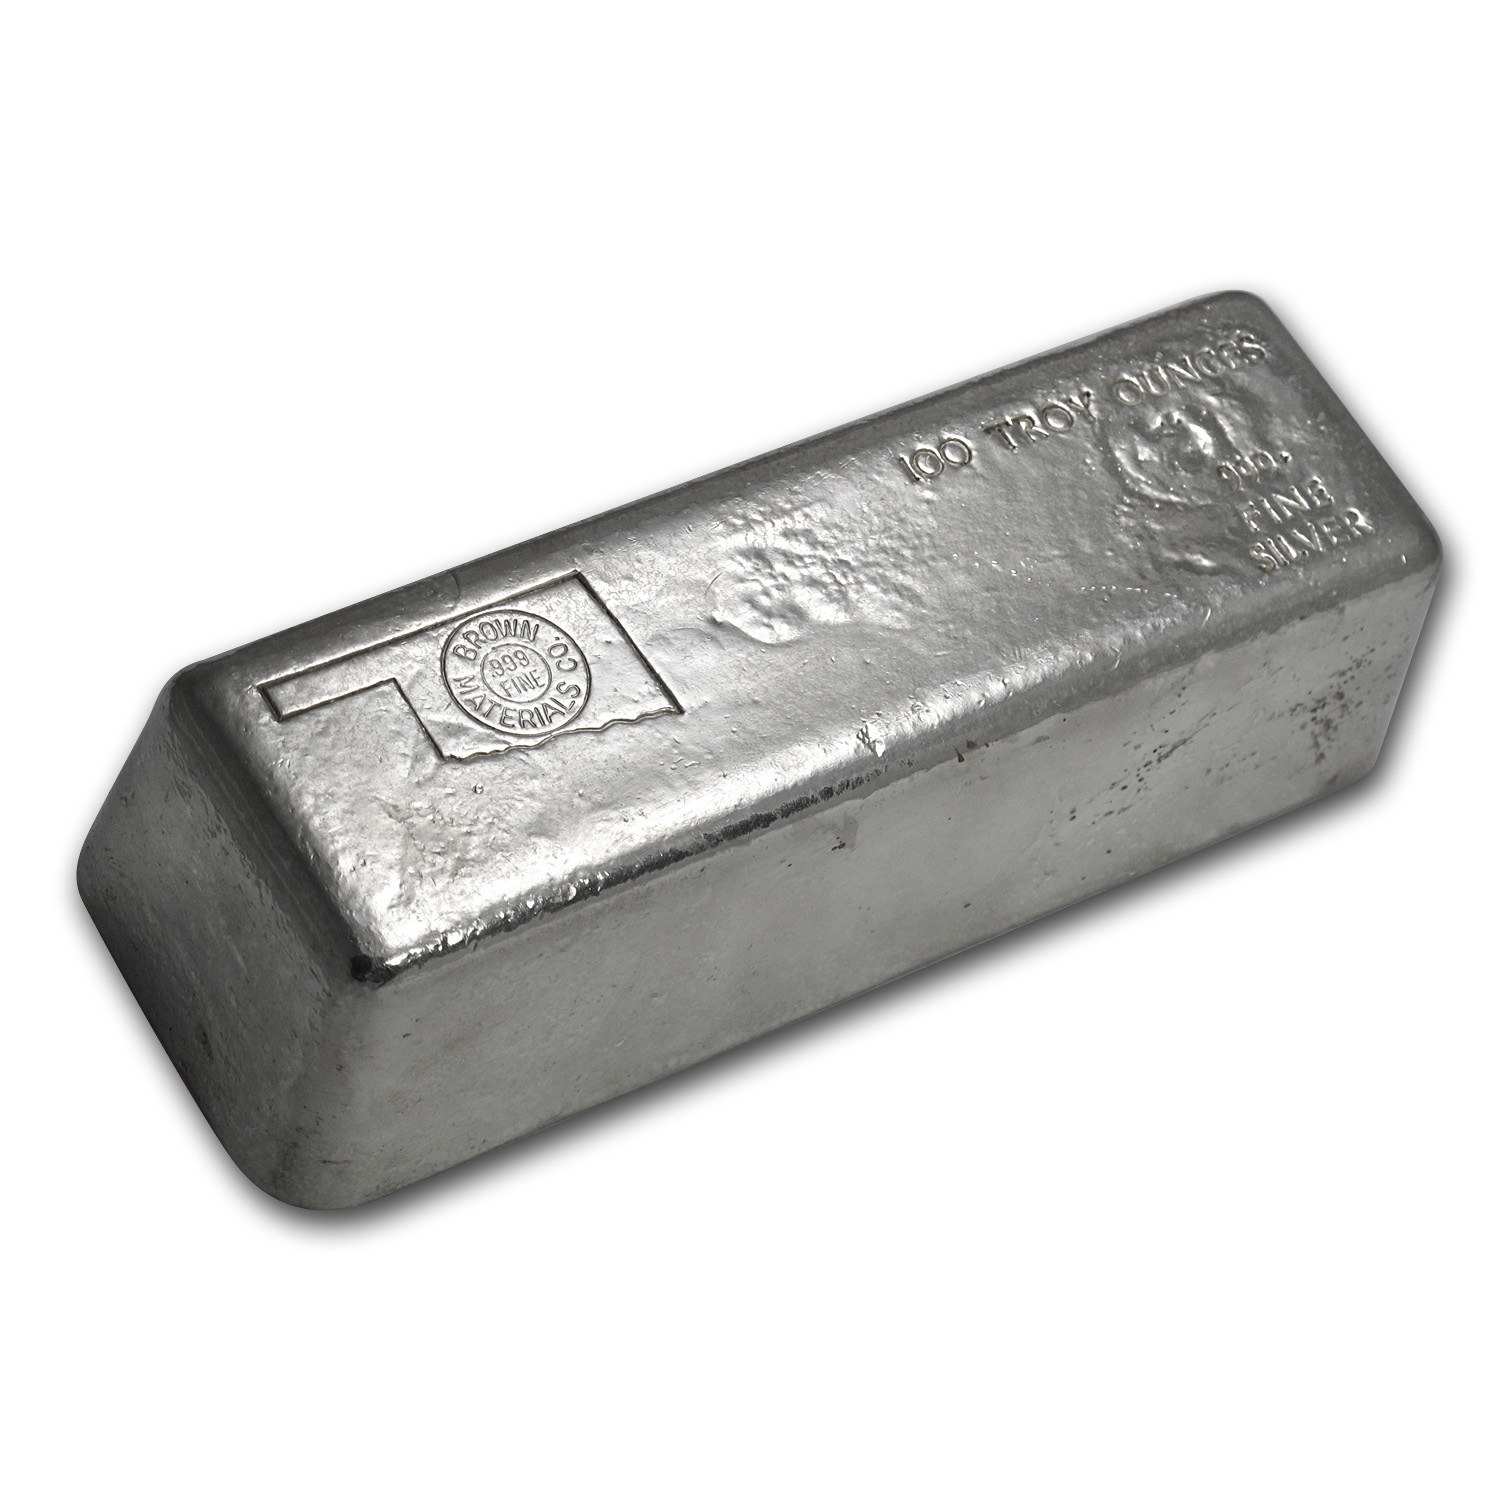 100 oz Silver Bars - Brown Materials